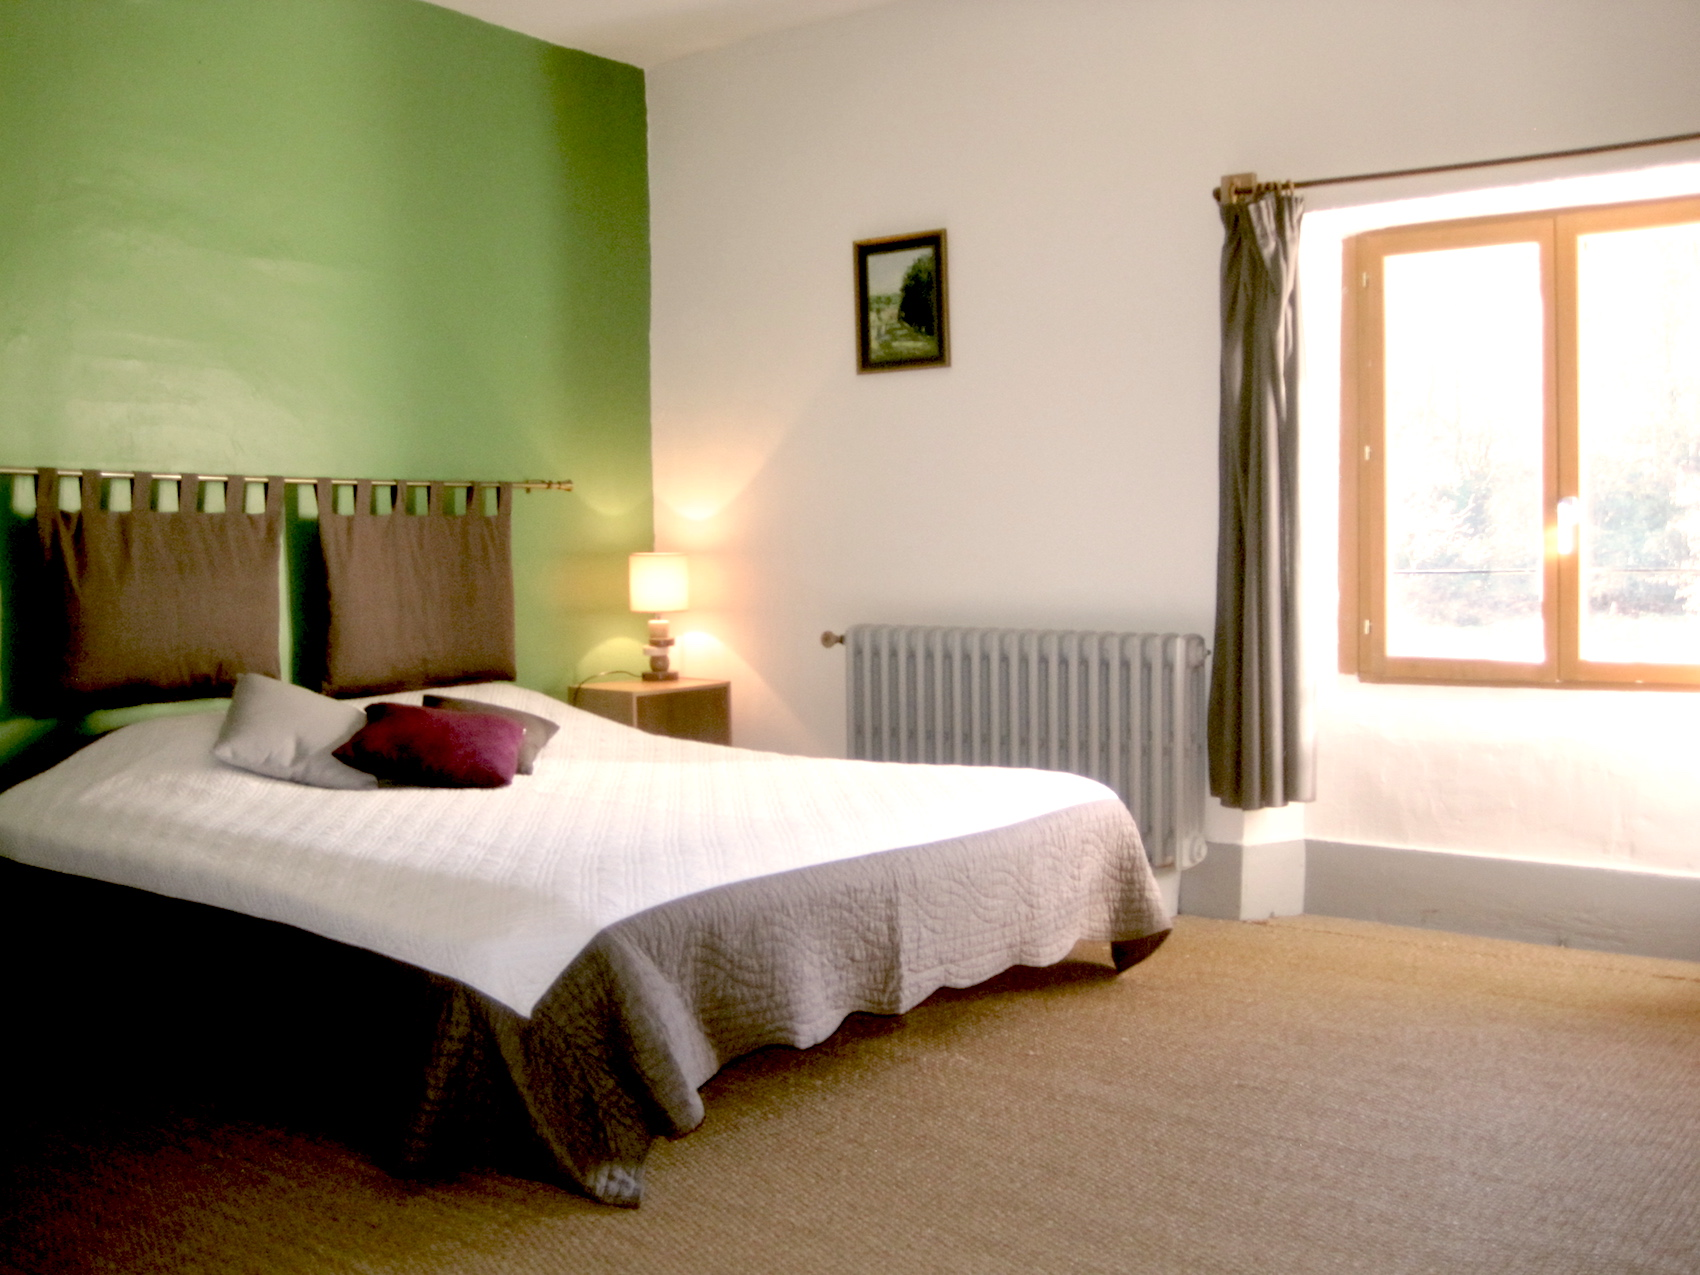 Package 2 - Shared room, 2 people, en suite bathroom, seating area, desk, river and garden views. Single or double bed. €660 (€330 per person, 3 nights, four days.) Reserve or inquire!